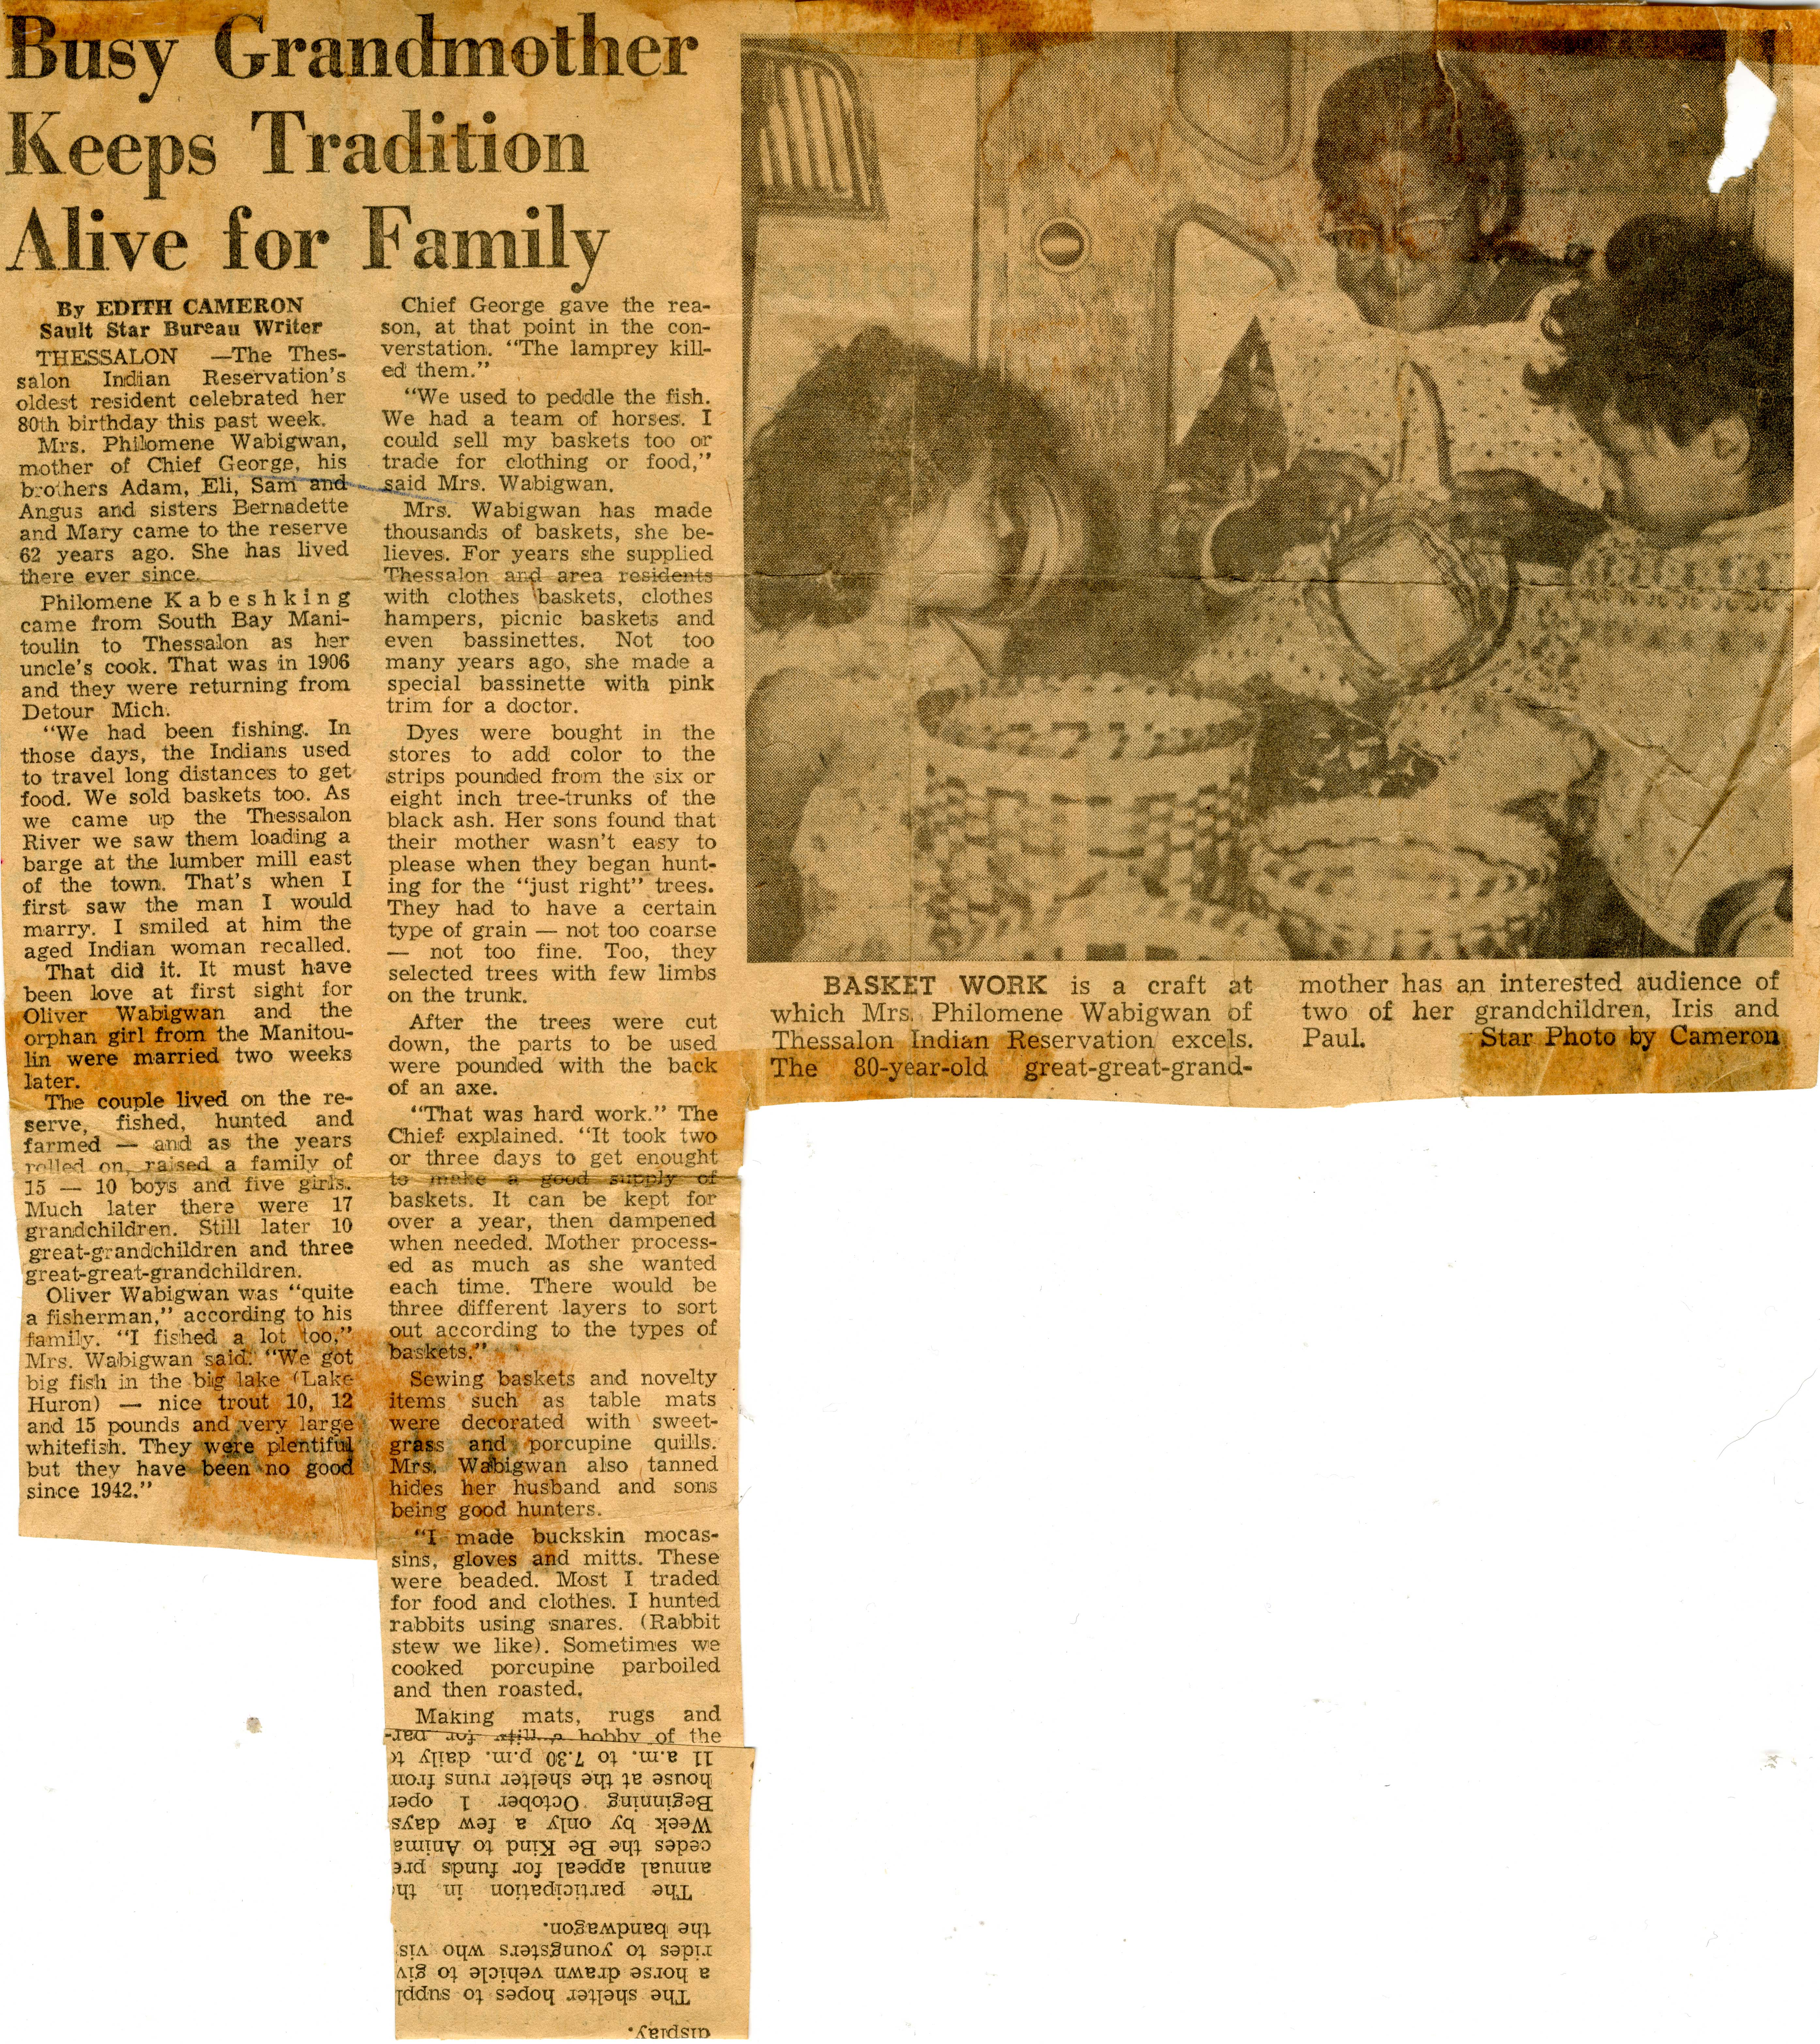 """""""Busy Grandmother Keeps Tradition Alive"""", Sault Star Clipping, circa 1970"""